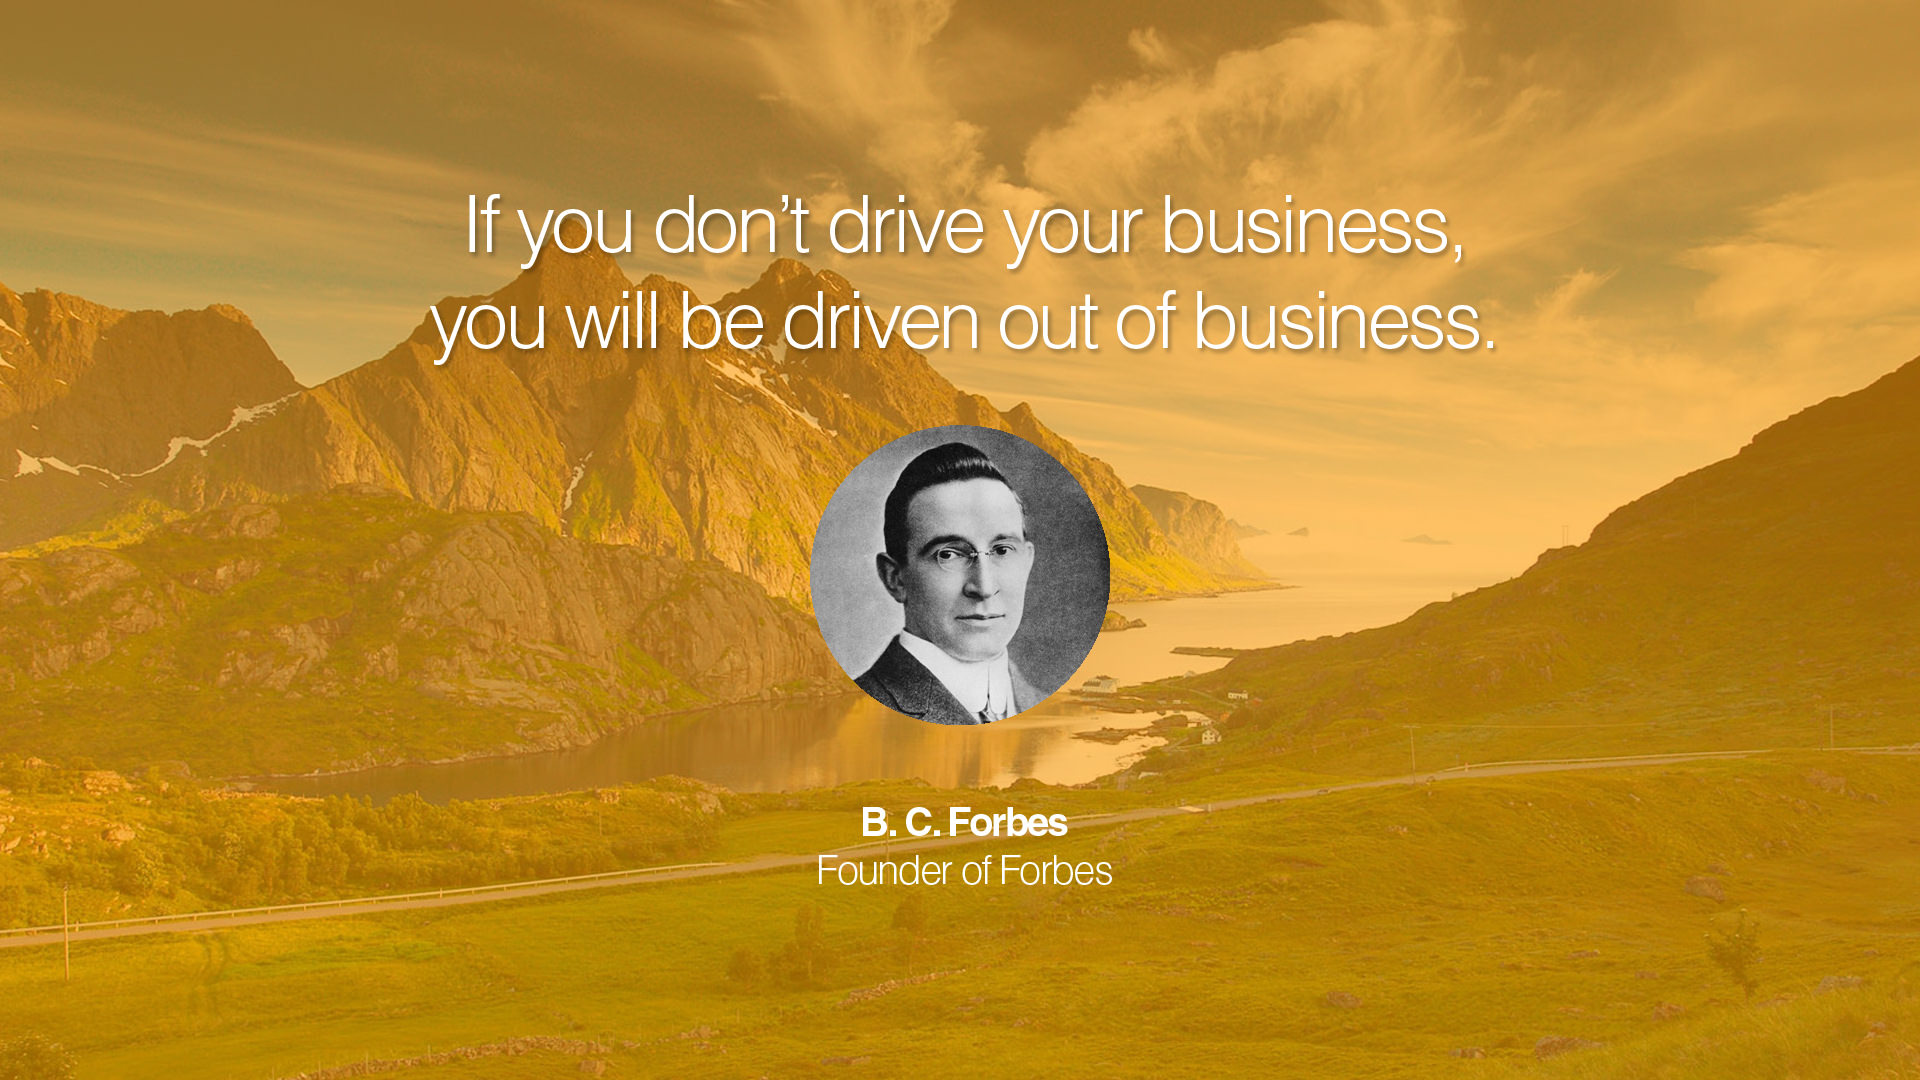 21 Quotes By Billionaires And Business Icons For Aspiring ...